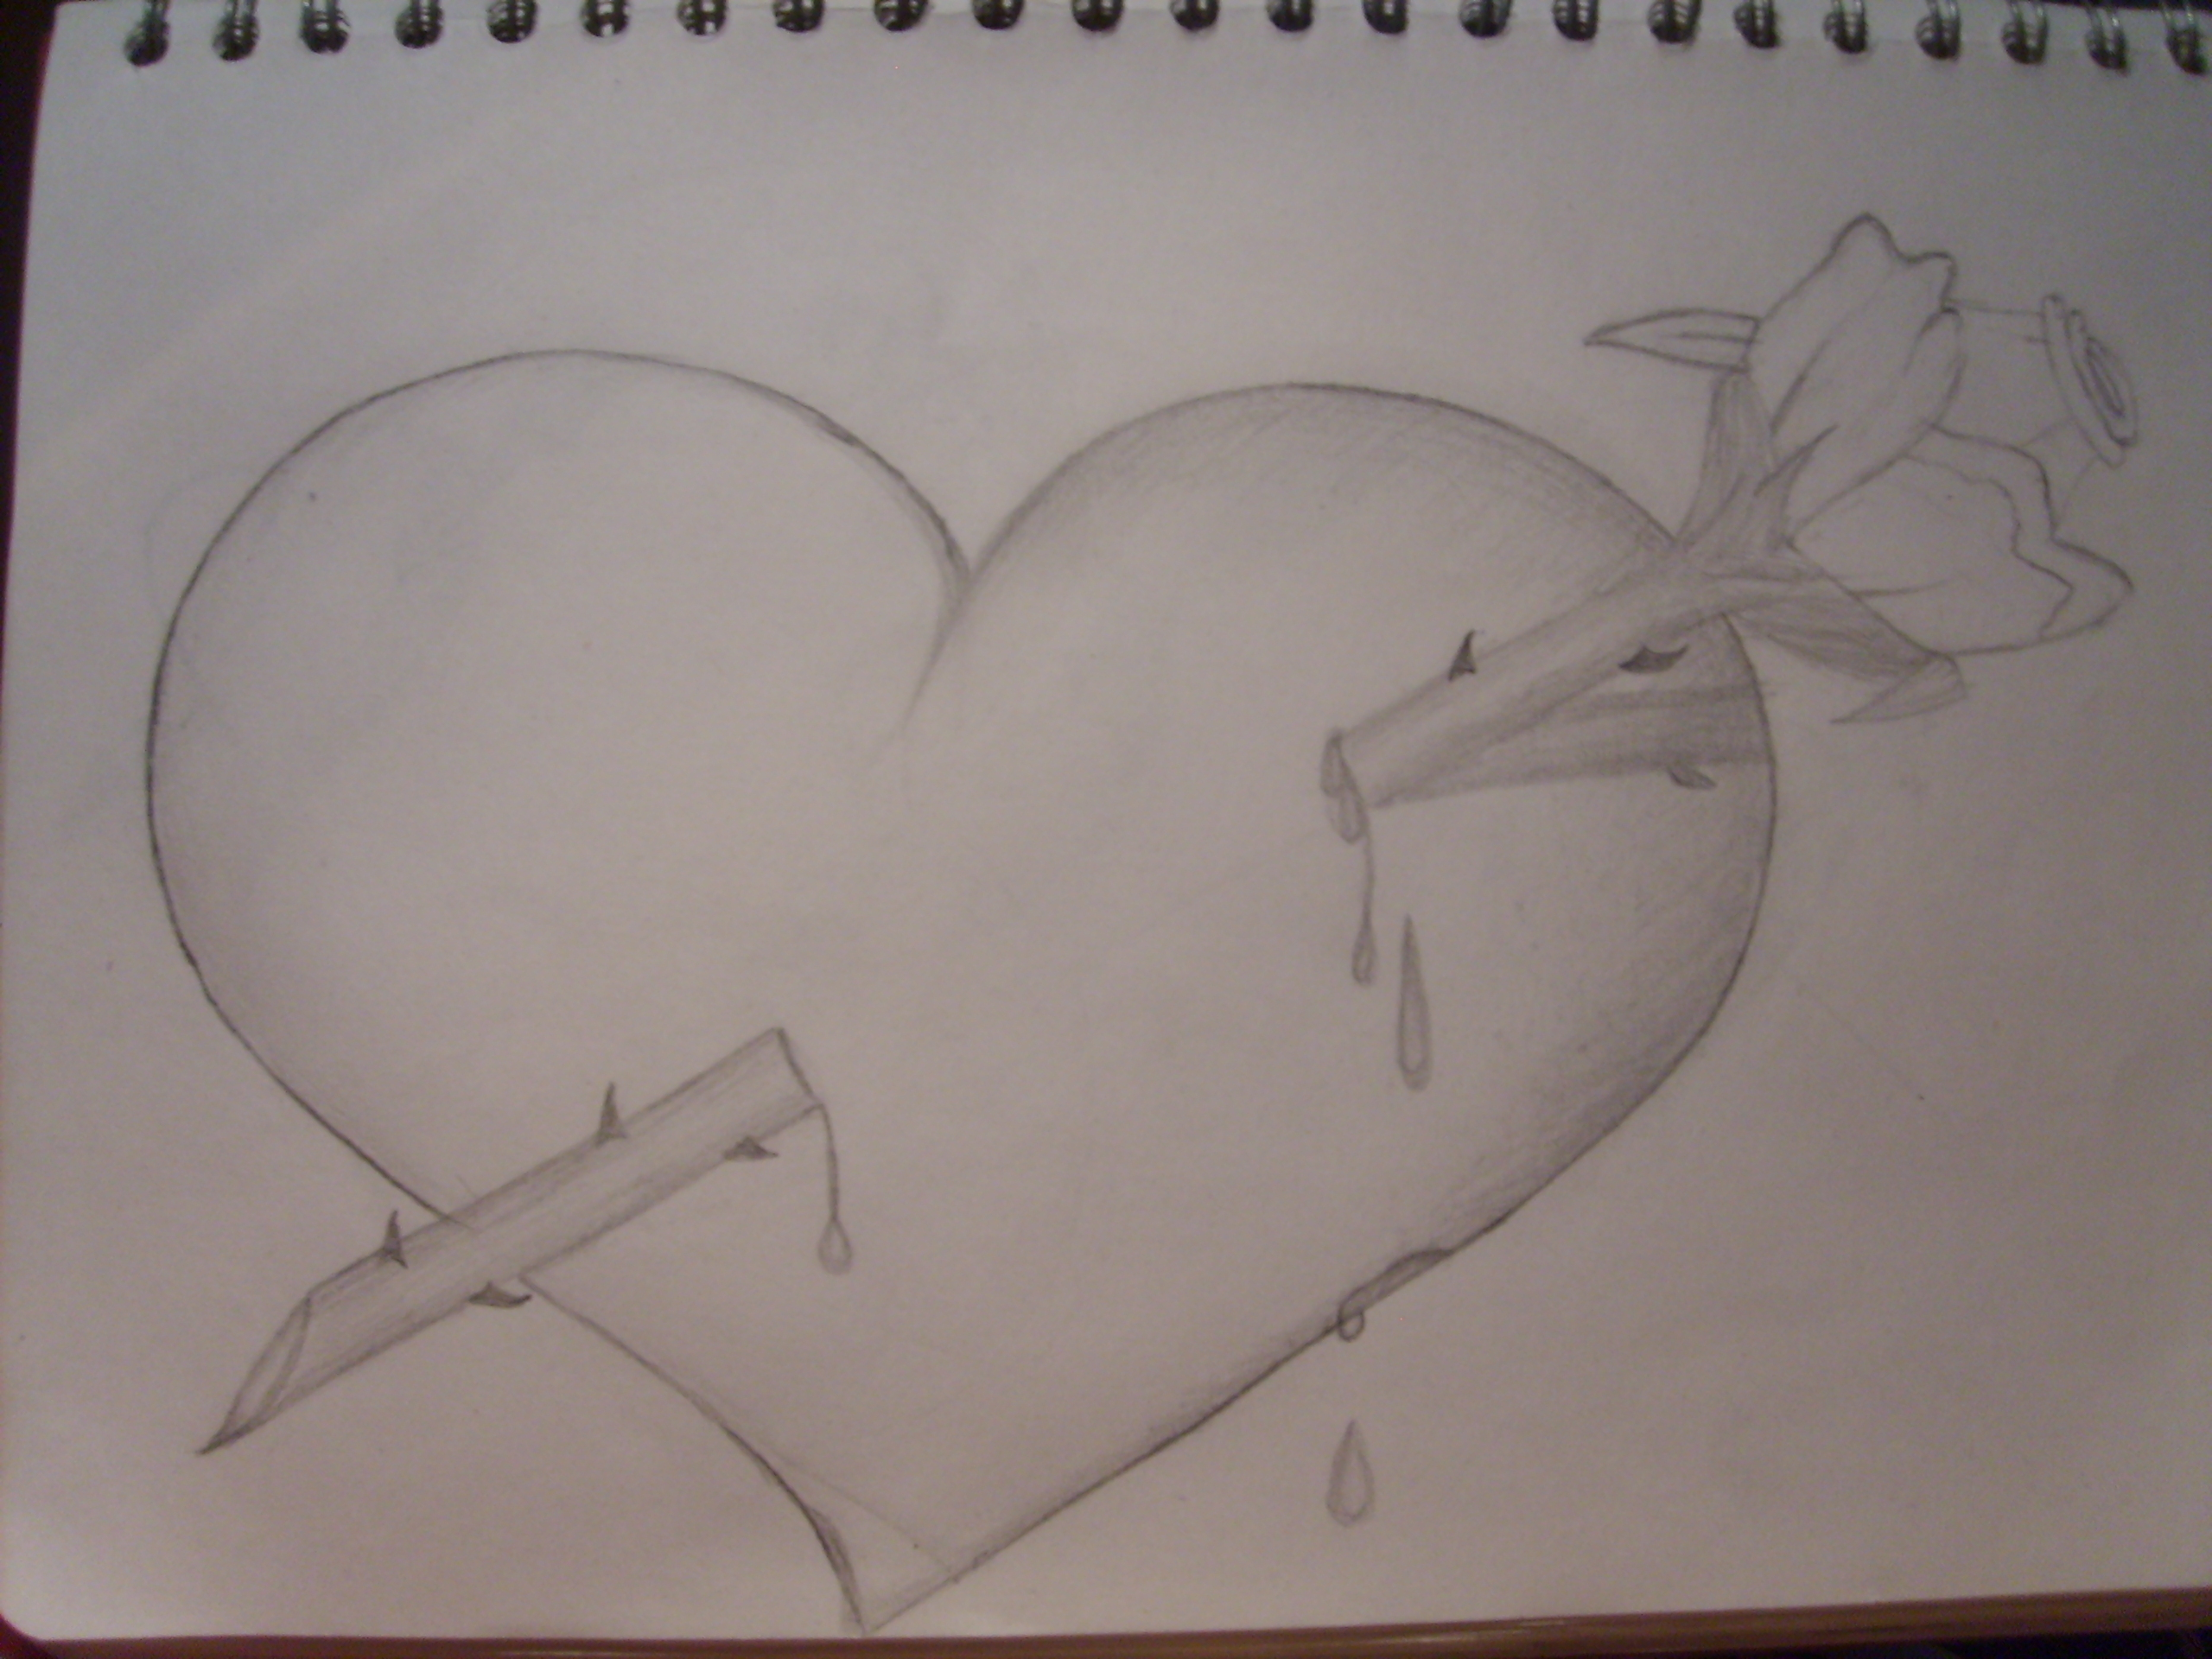 2560x1920 Images For Gt Hearts And Roses Stars Drawings Art Pinterest